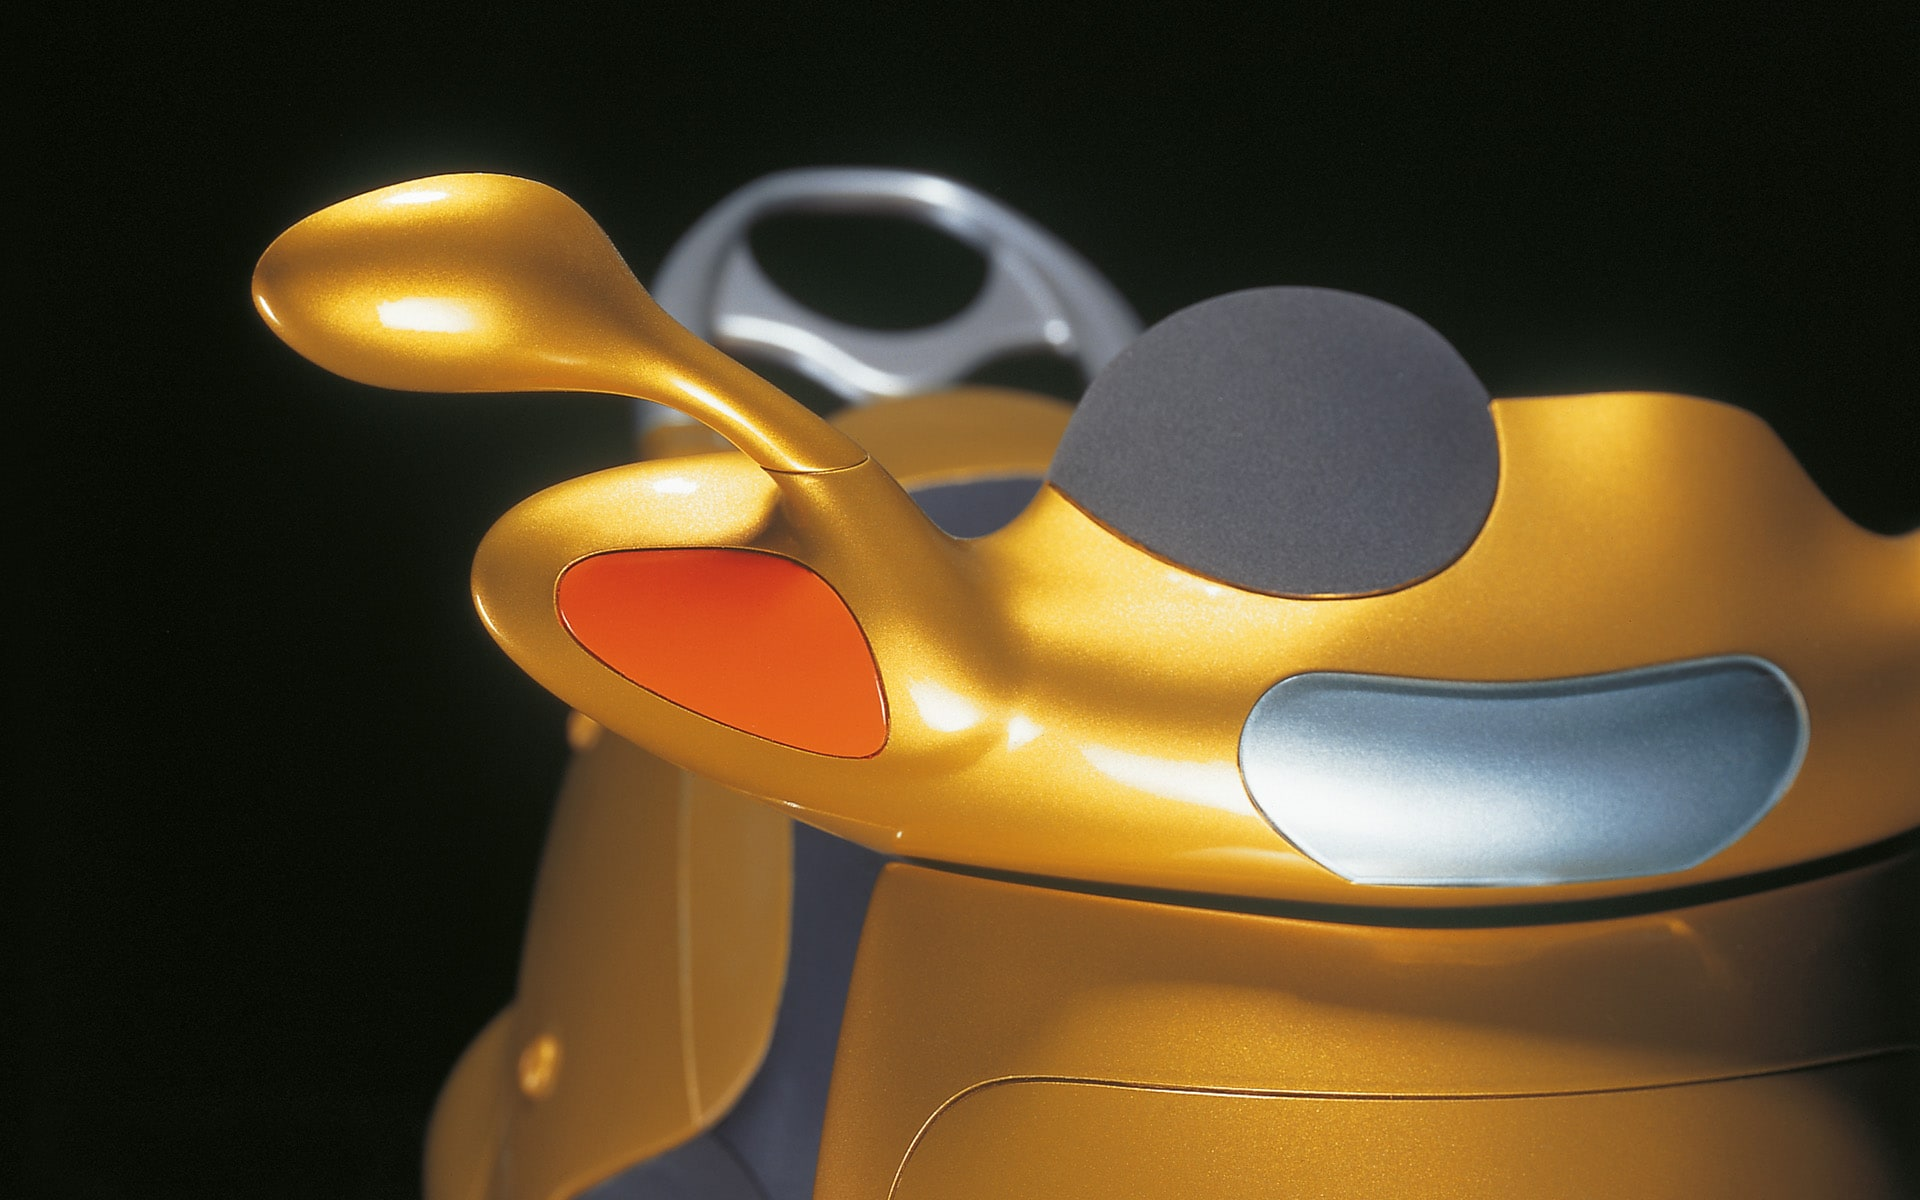 Gold-colored ITO Design Motorroller for Hercules, created in 1993